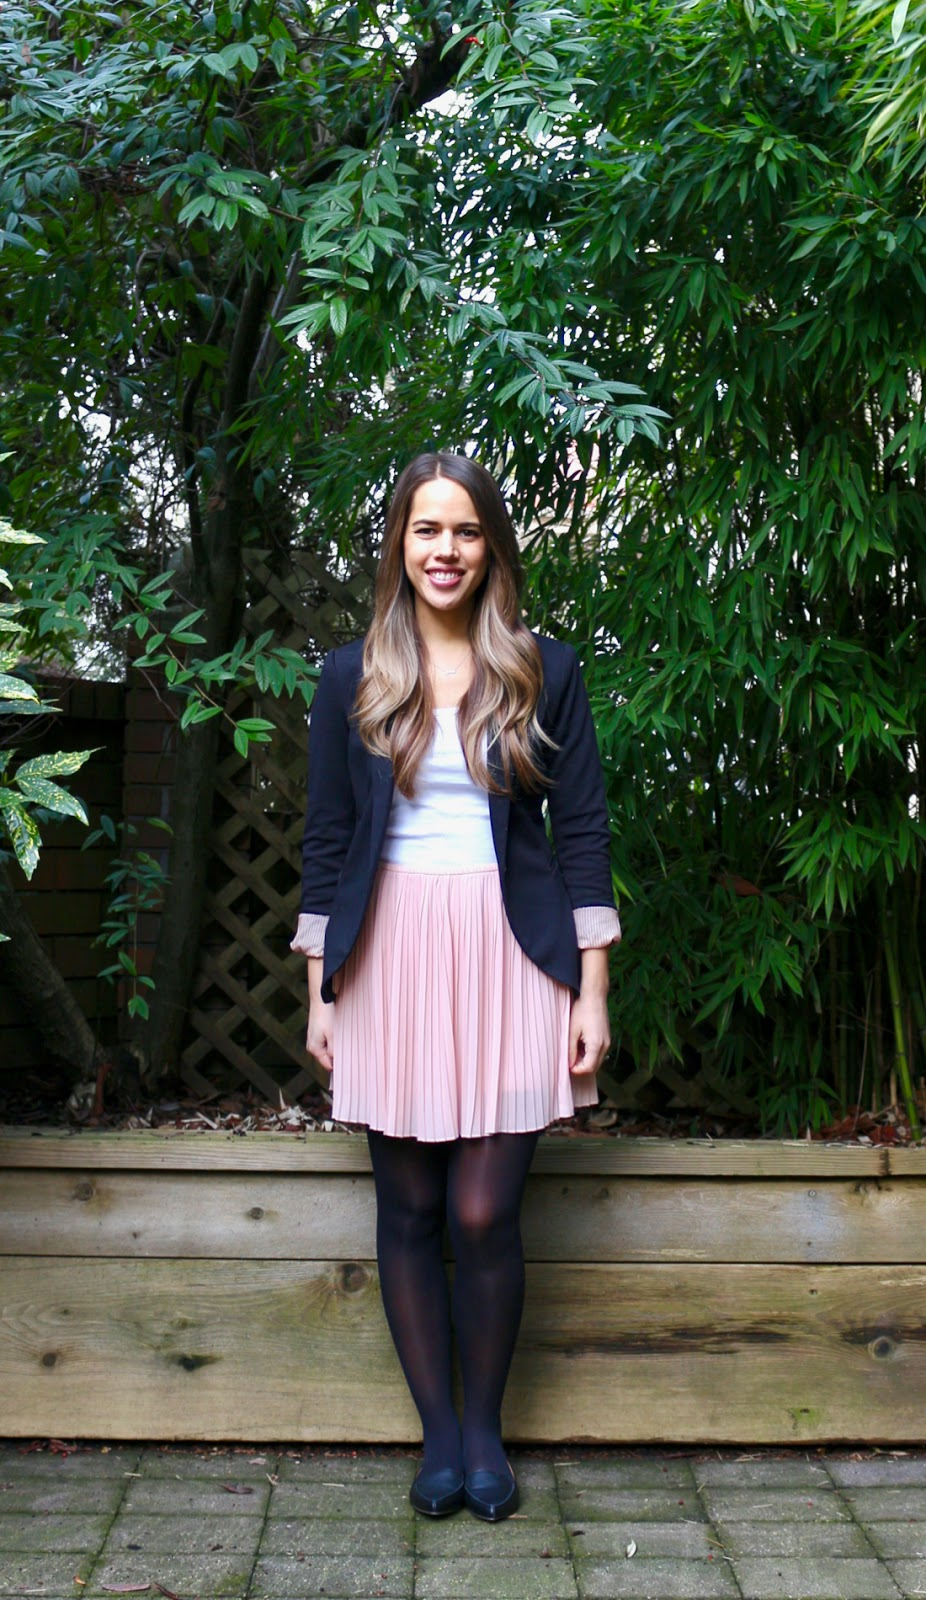 Jules in Flats - Pleated Mini Skirt with Blazer (Business Casual Winter Workwear on a Budget)